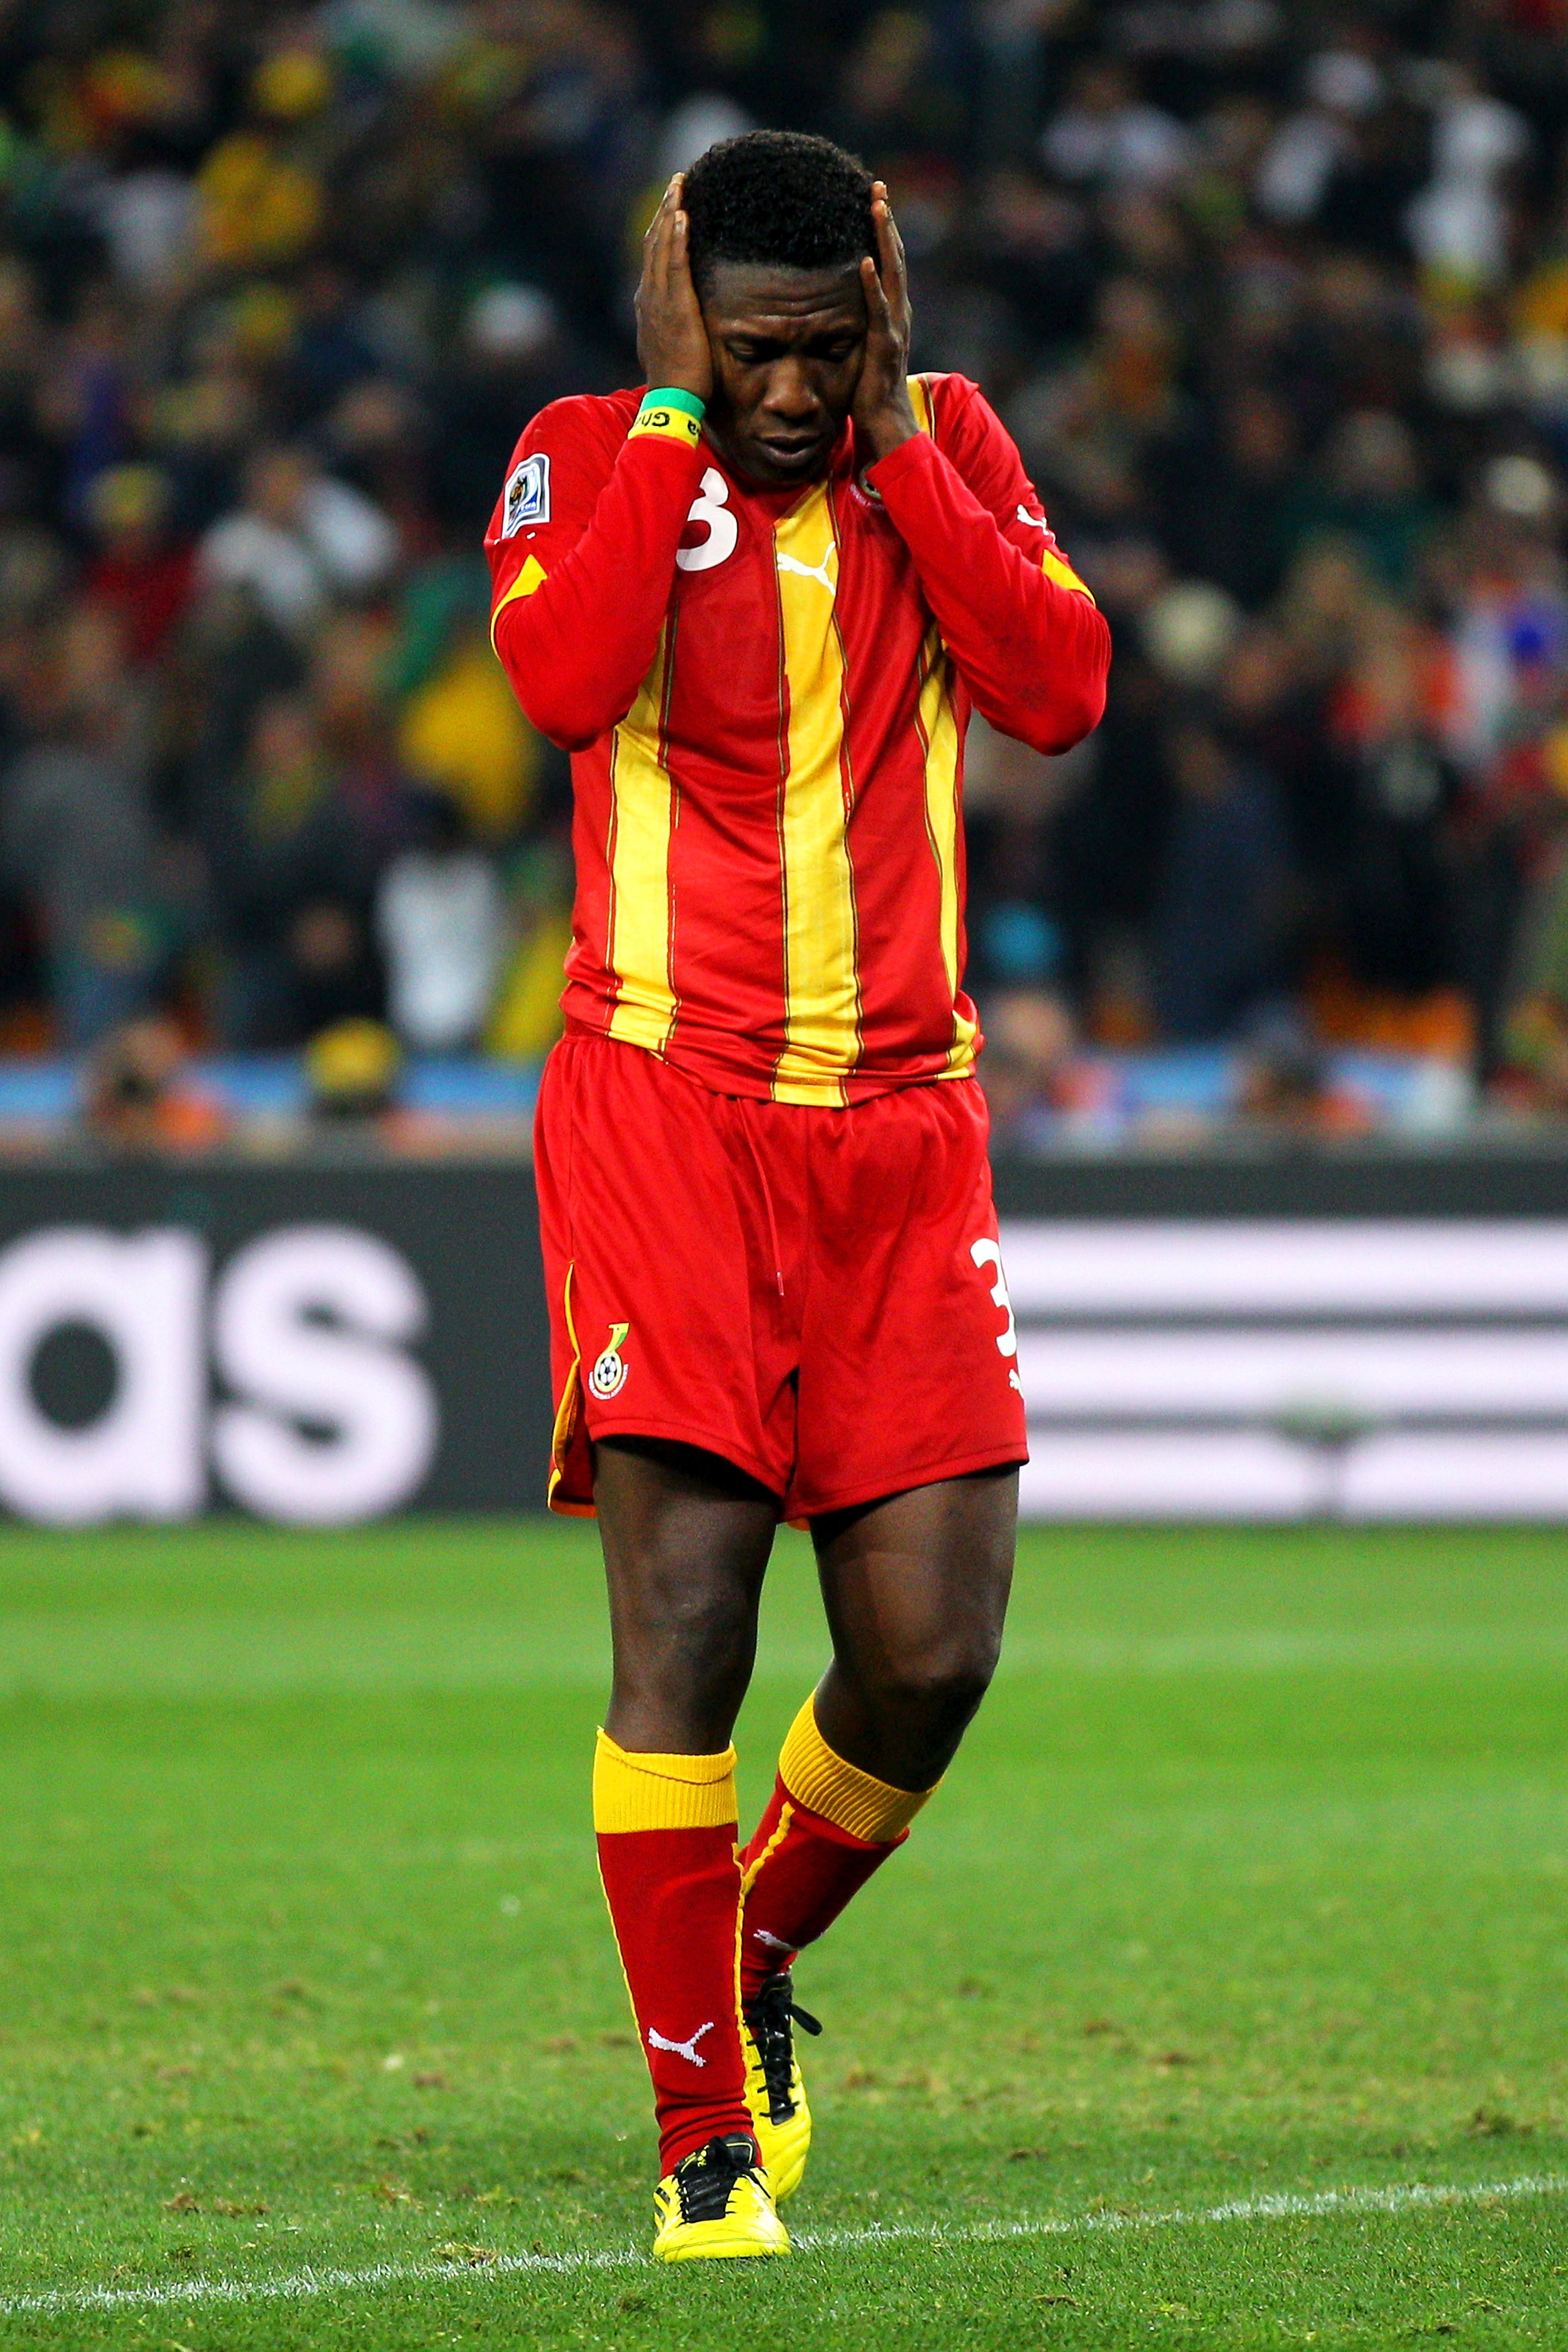 JOHANNESBURG, SOUTH AFRICA - JULY 02:  Asamoah Gyan of Ghana looks dejected after missing his penalty during the 2010 FIFA World Cup South Africa Quarter Final match between Uruguay and Ghana at the Soccer City stadium on July 2, 2010 in Johannesburg, Sou